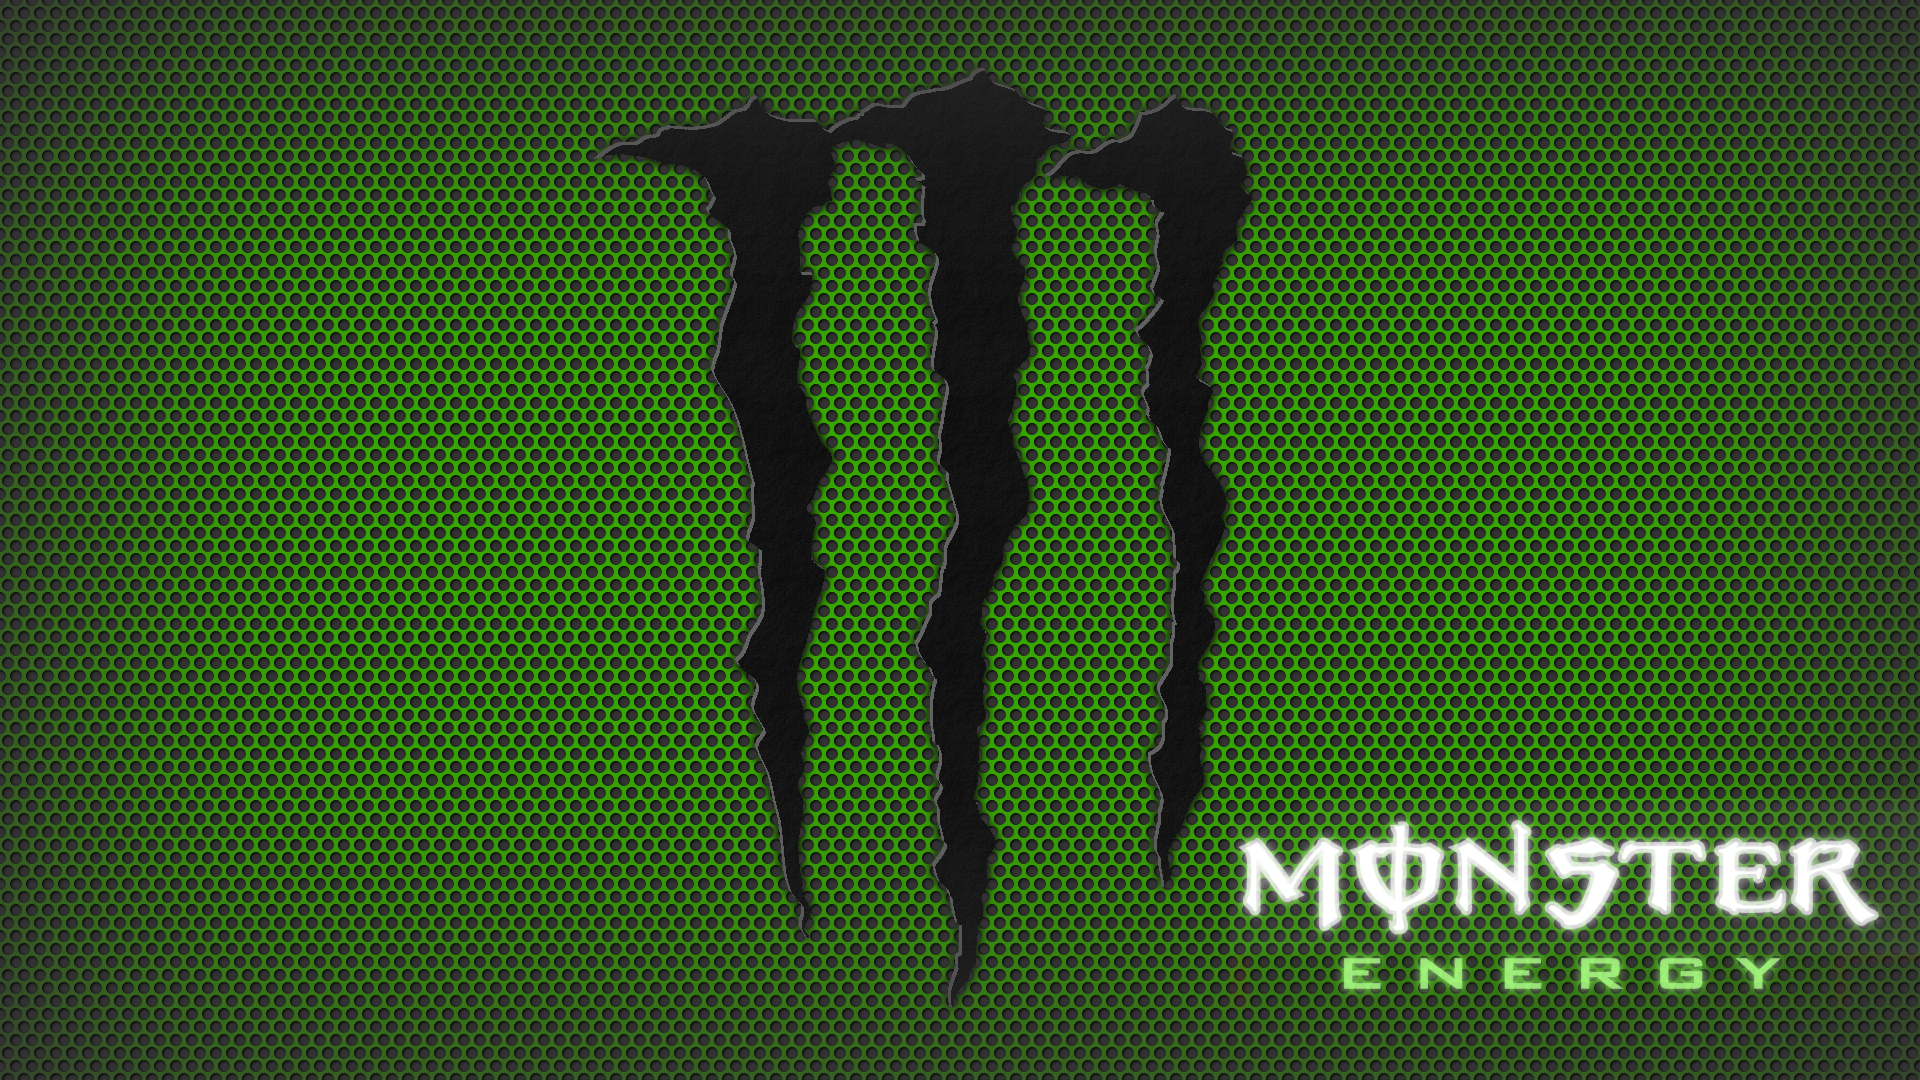 Monster Energy Hd Wallpapers Pictures Backgrounds